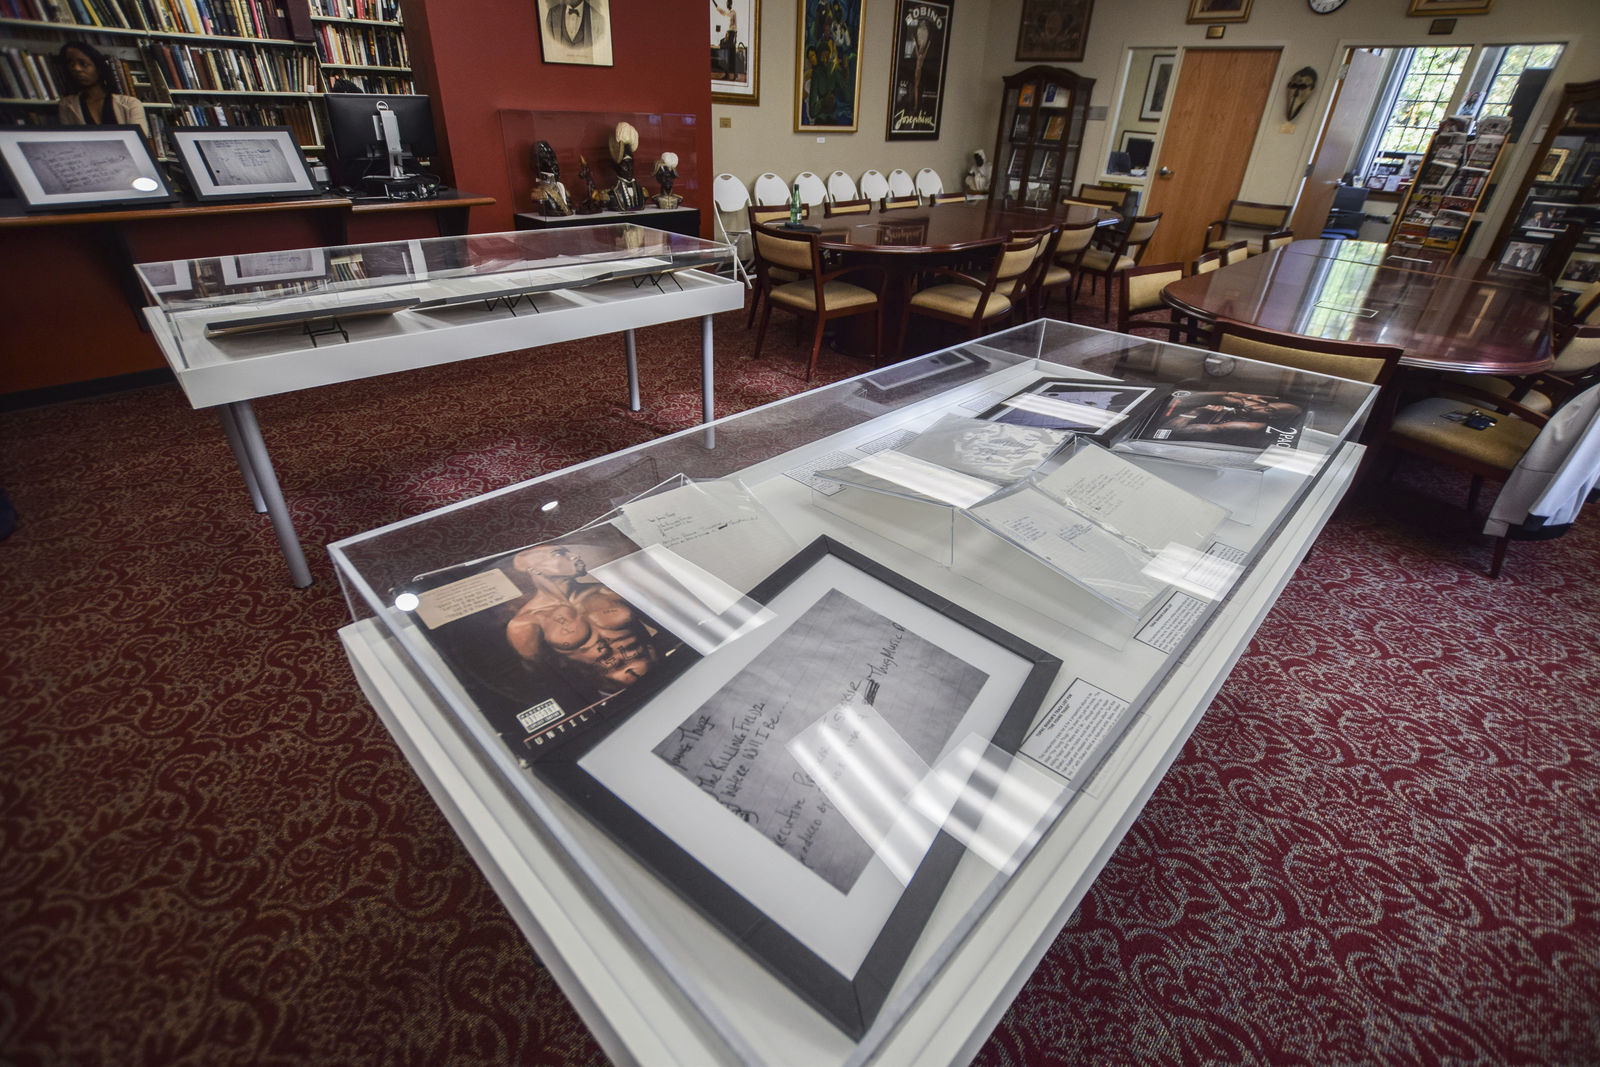 Items that belonged to rapper Tupac Shakur are now part of the Blockson Collection at Temple University, in Philadelphia, Thursday, Nov. 1, 2018. (Erin Blewett /The Philadelphia Inquirer via AP)